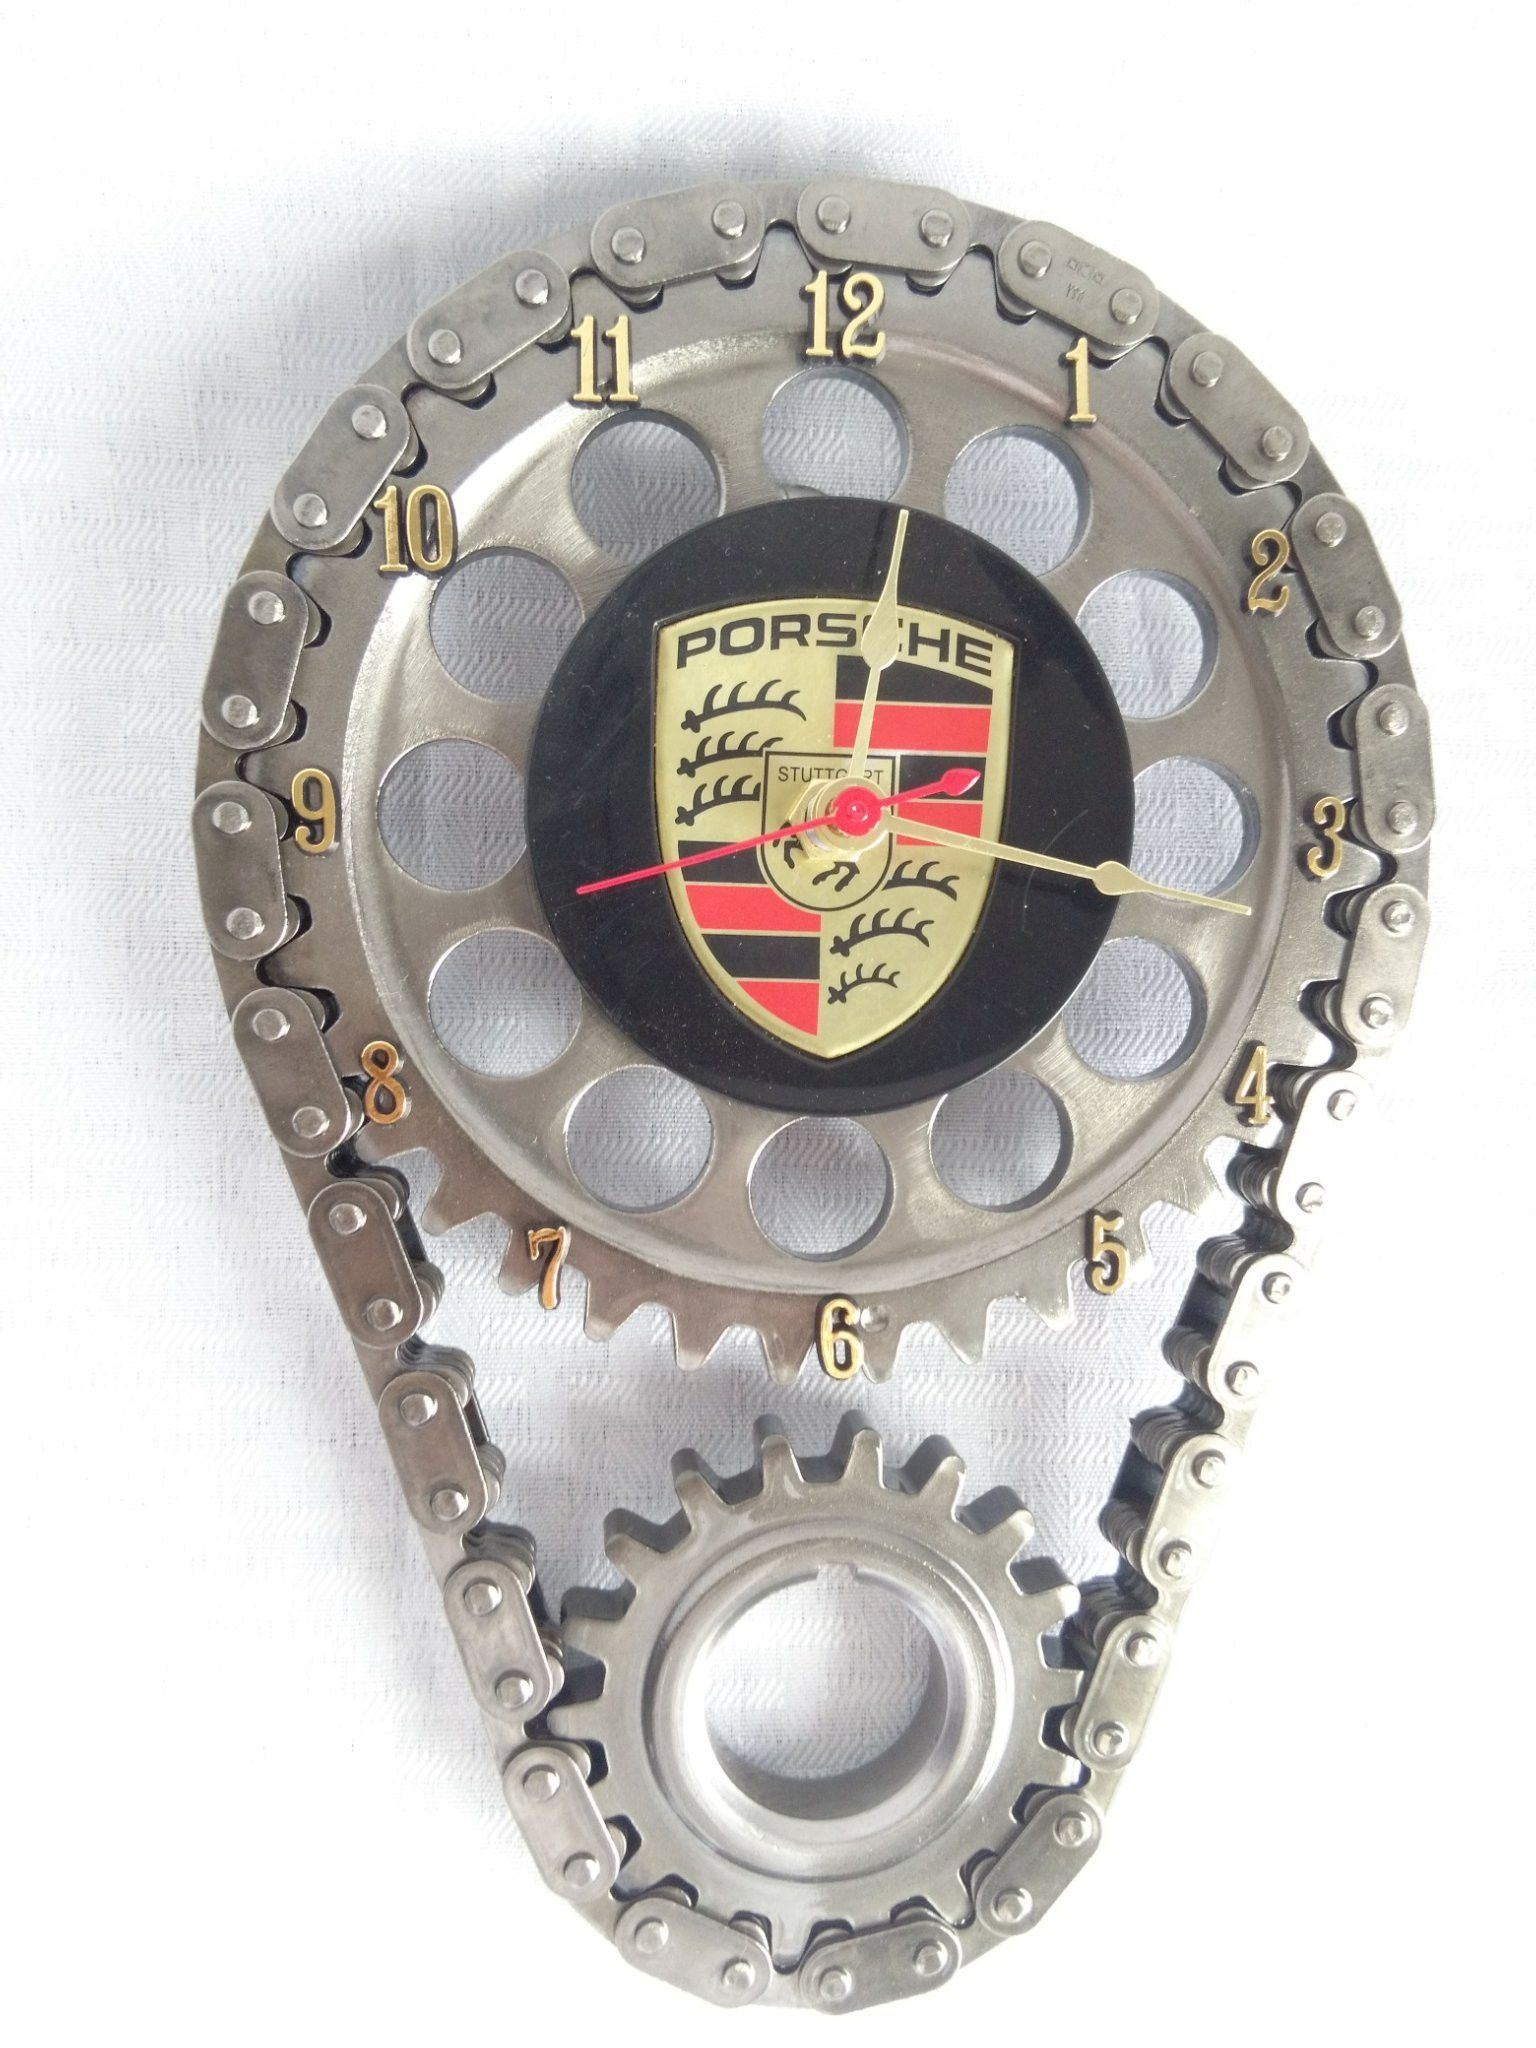 Porsche engine timing gear and chain wall clock wall clocks porsche engine timing gear and chain wall clock amipublicfo Choice Image